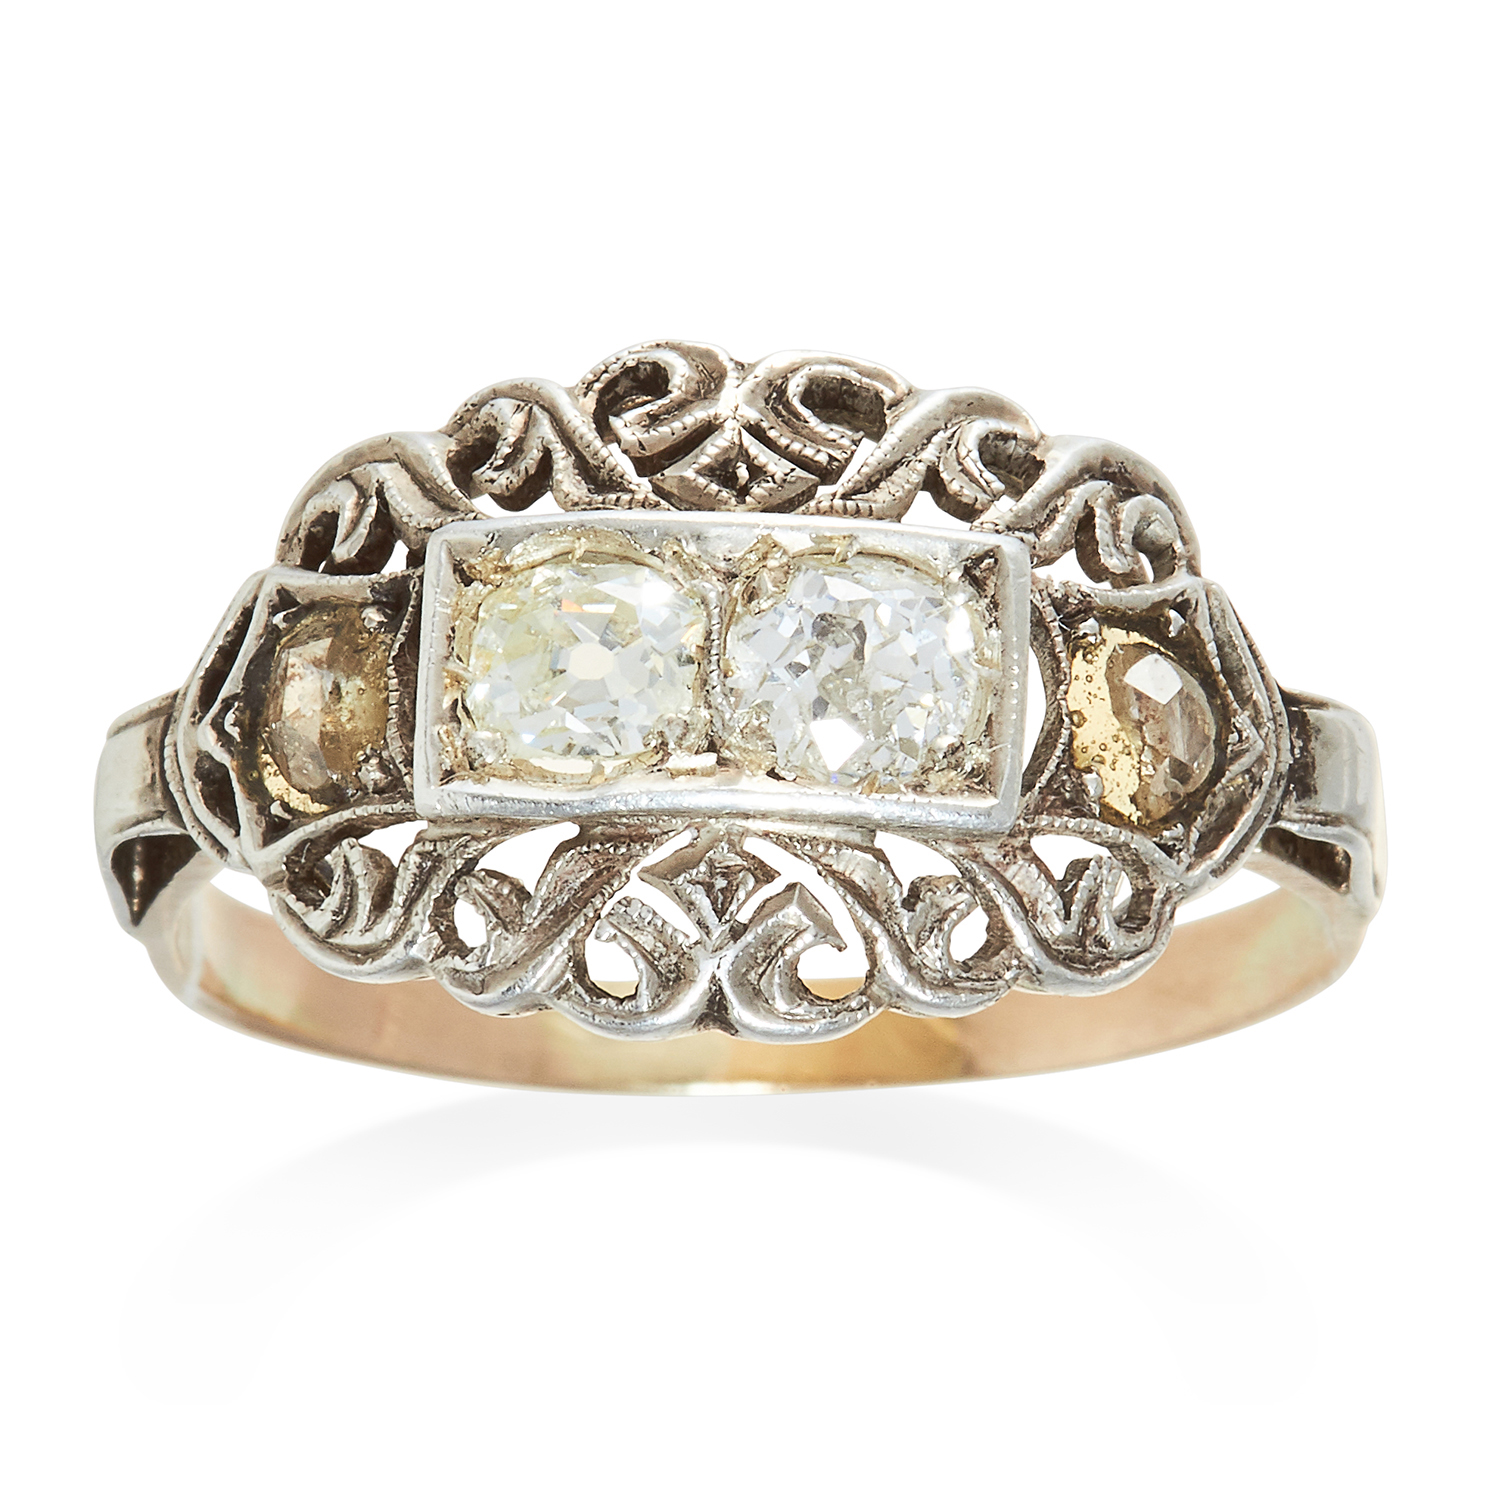 Los 304 - AN ANTIQUE DIAMOND RING in platinum or white gold, set with four diamonds among scrolling motifs,